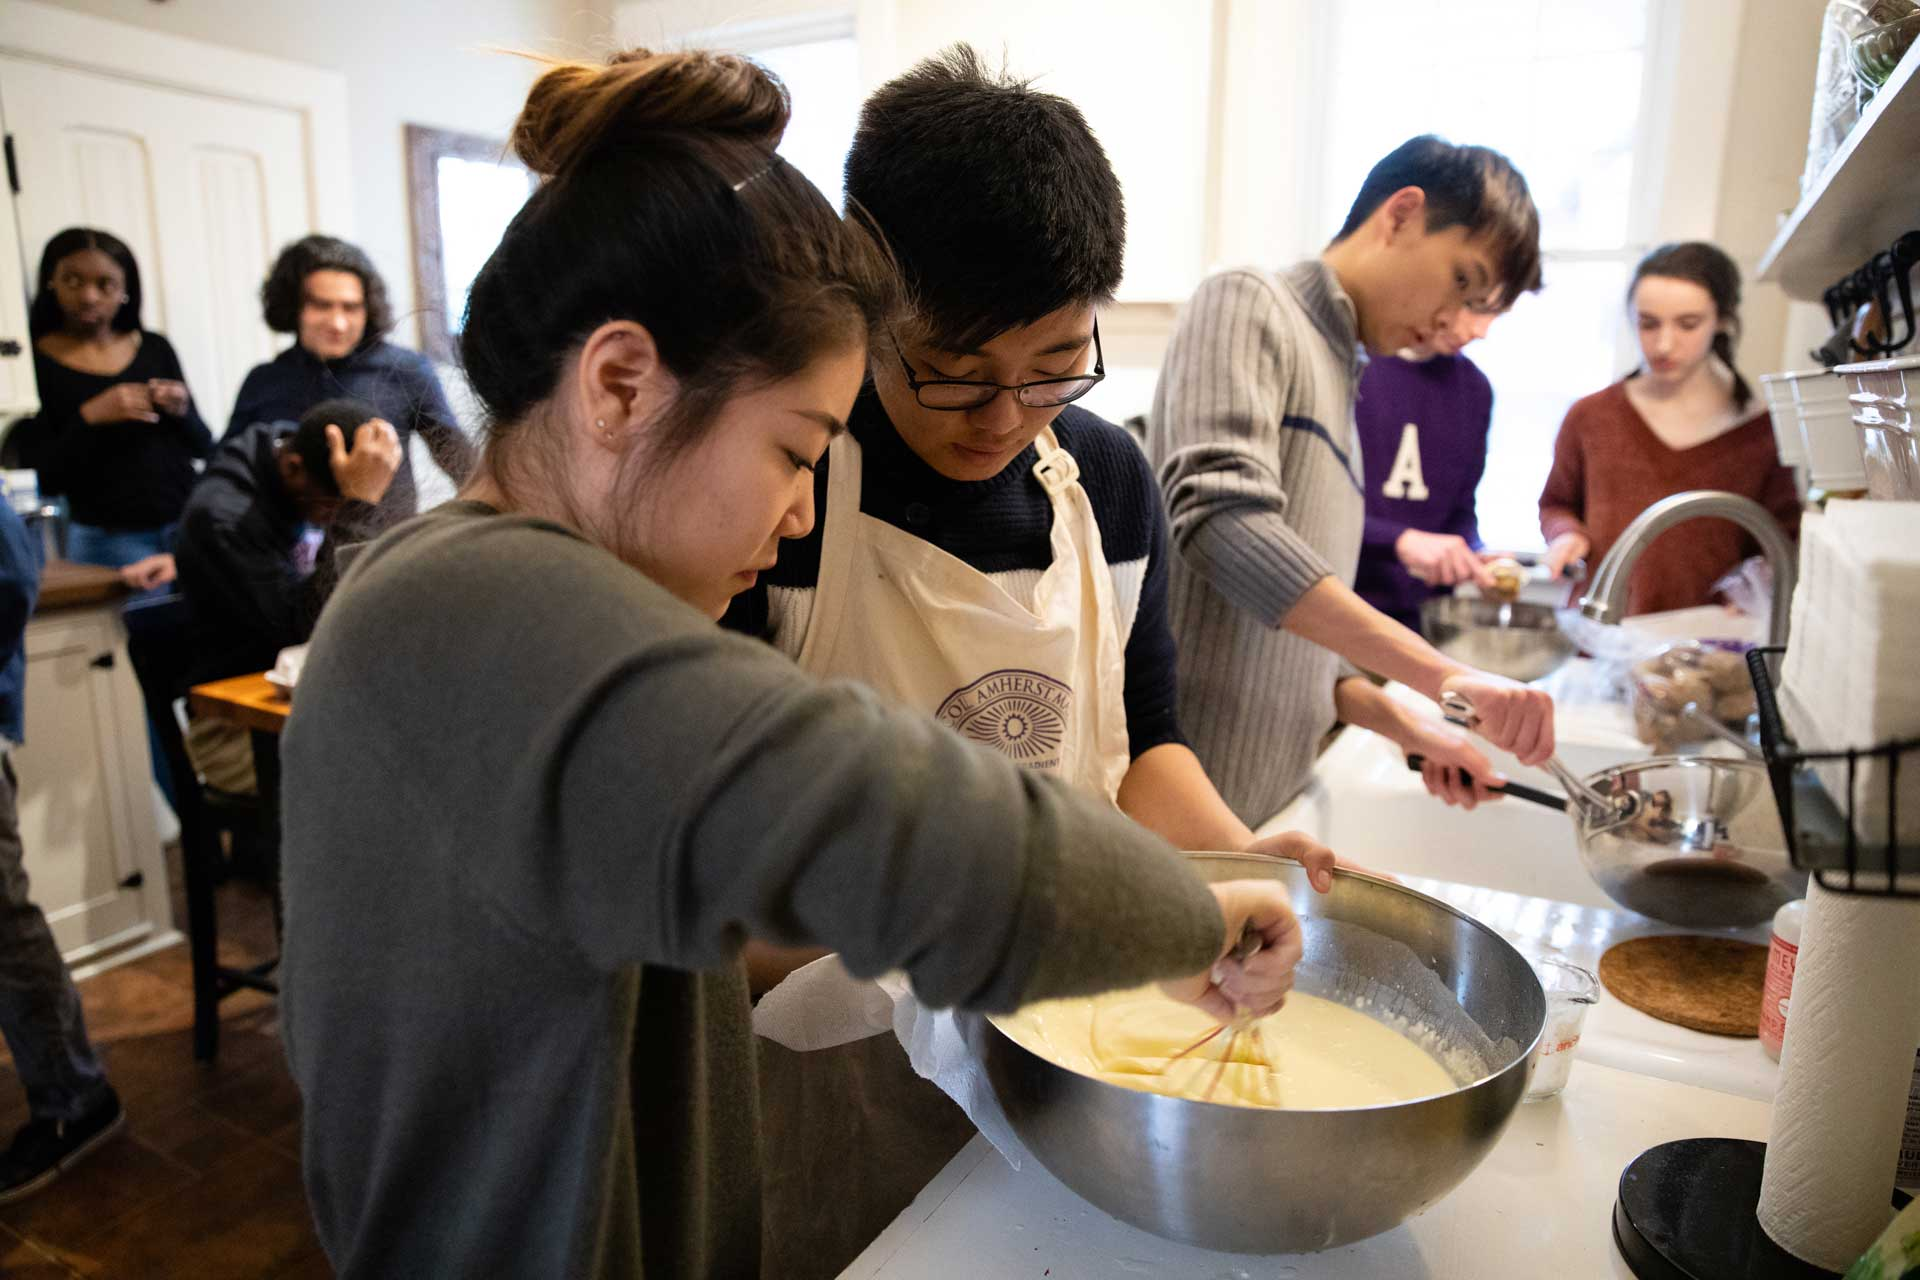 Students mixing and stirring ingredients in a bowl